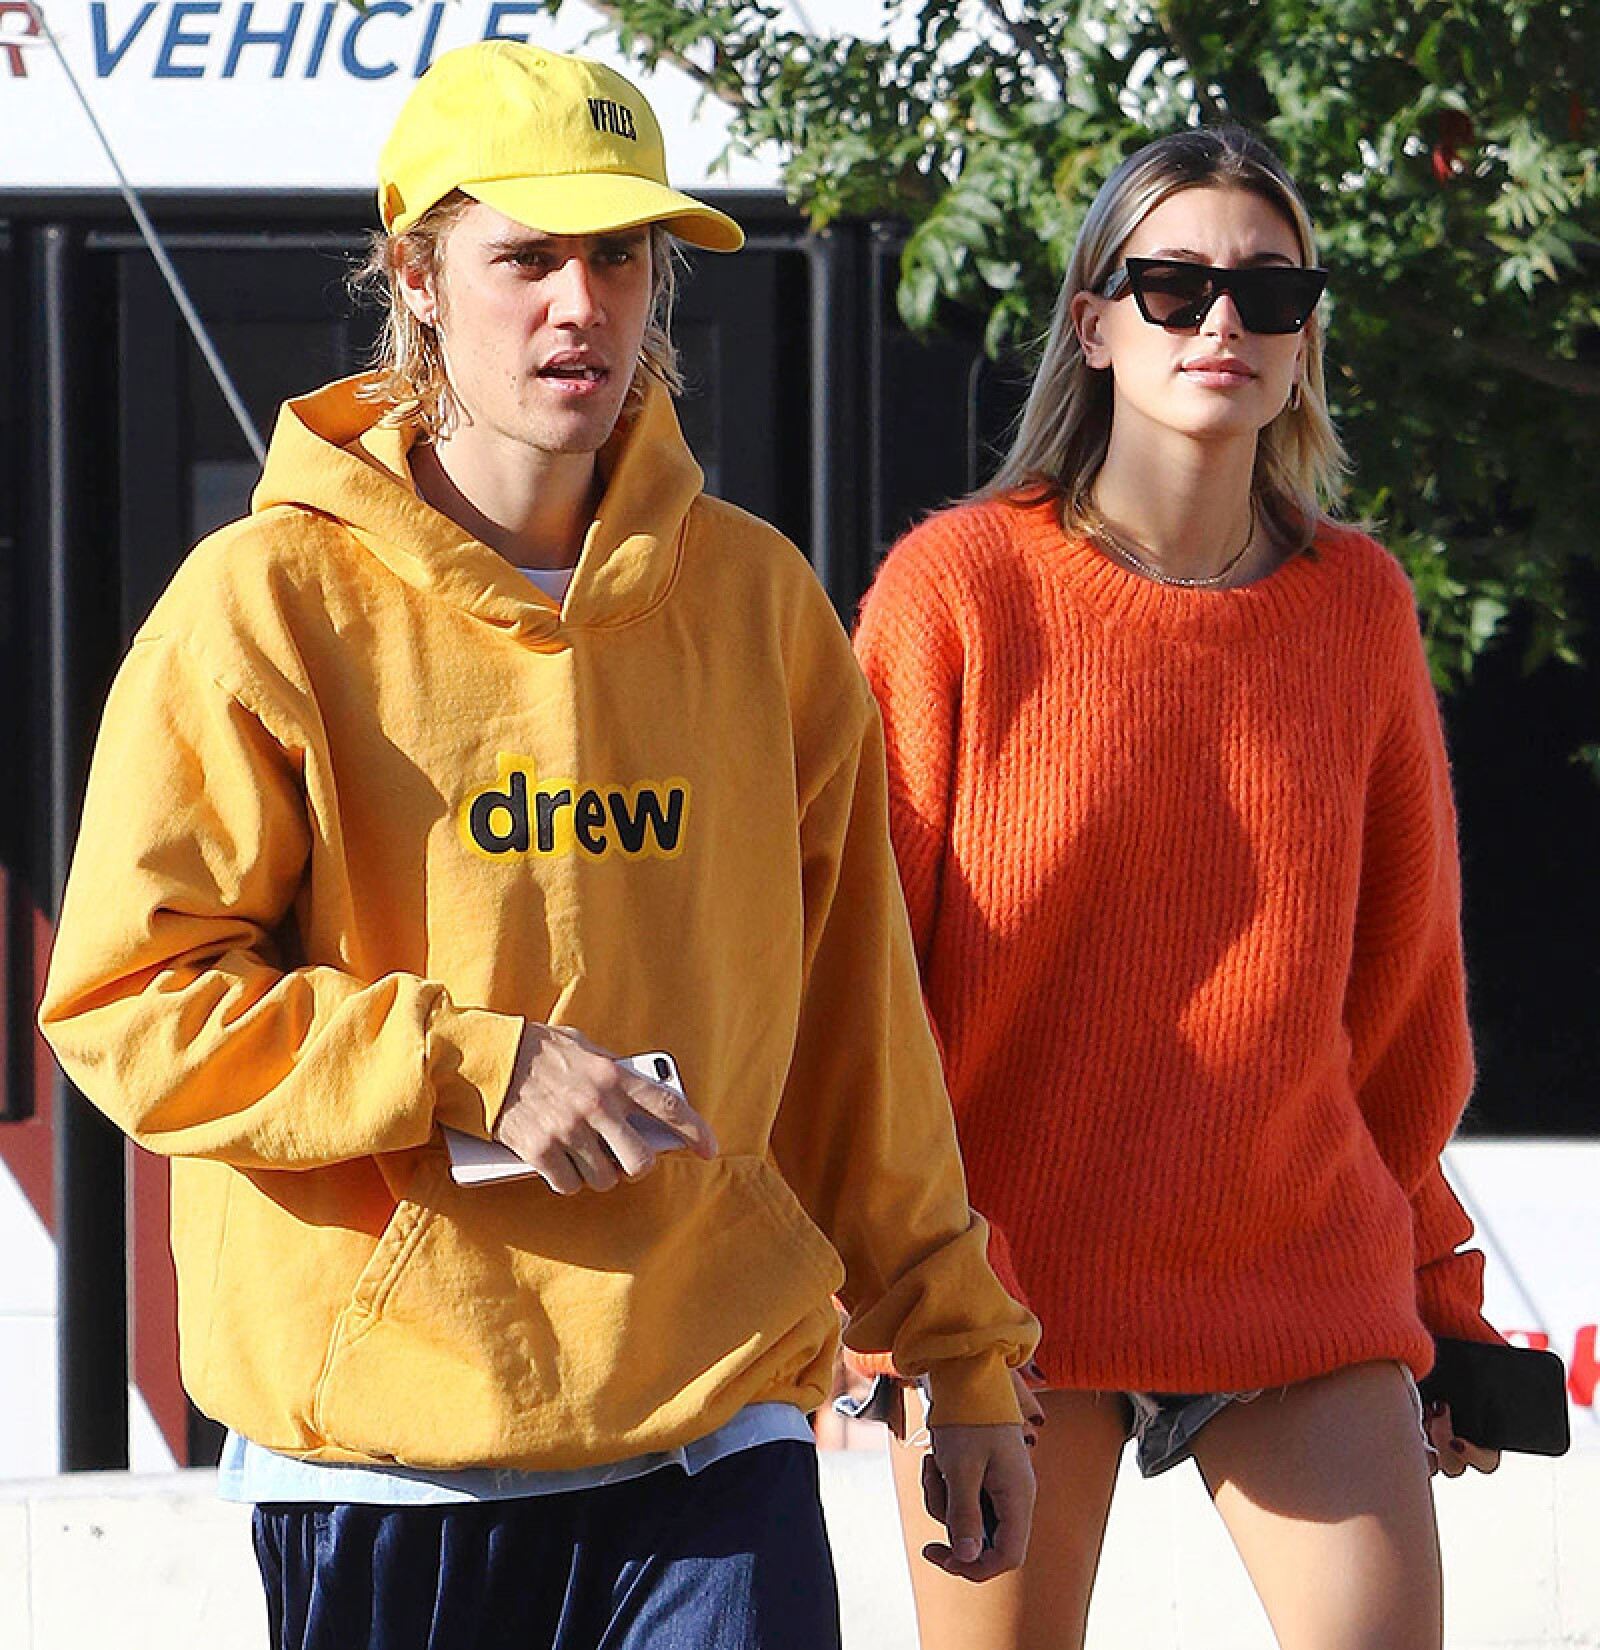 Justin Bieber and Hailey Baldwin out and about, West Hollywood, Los Angeles, USA - 24 Oct 2018